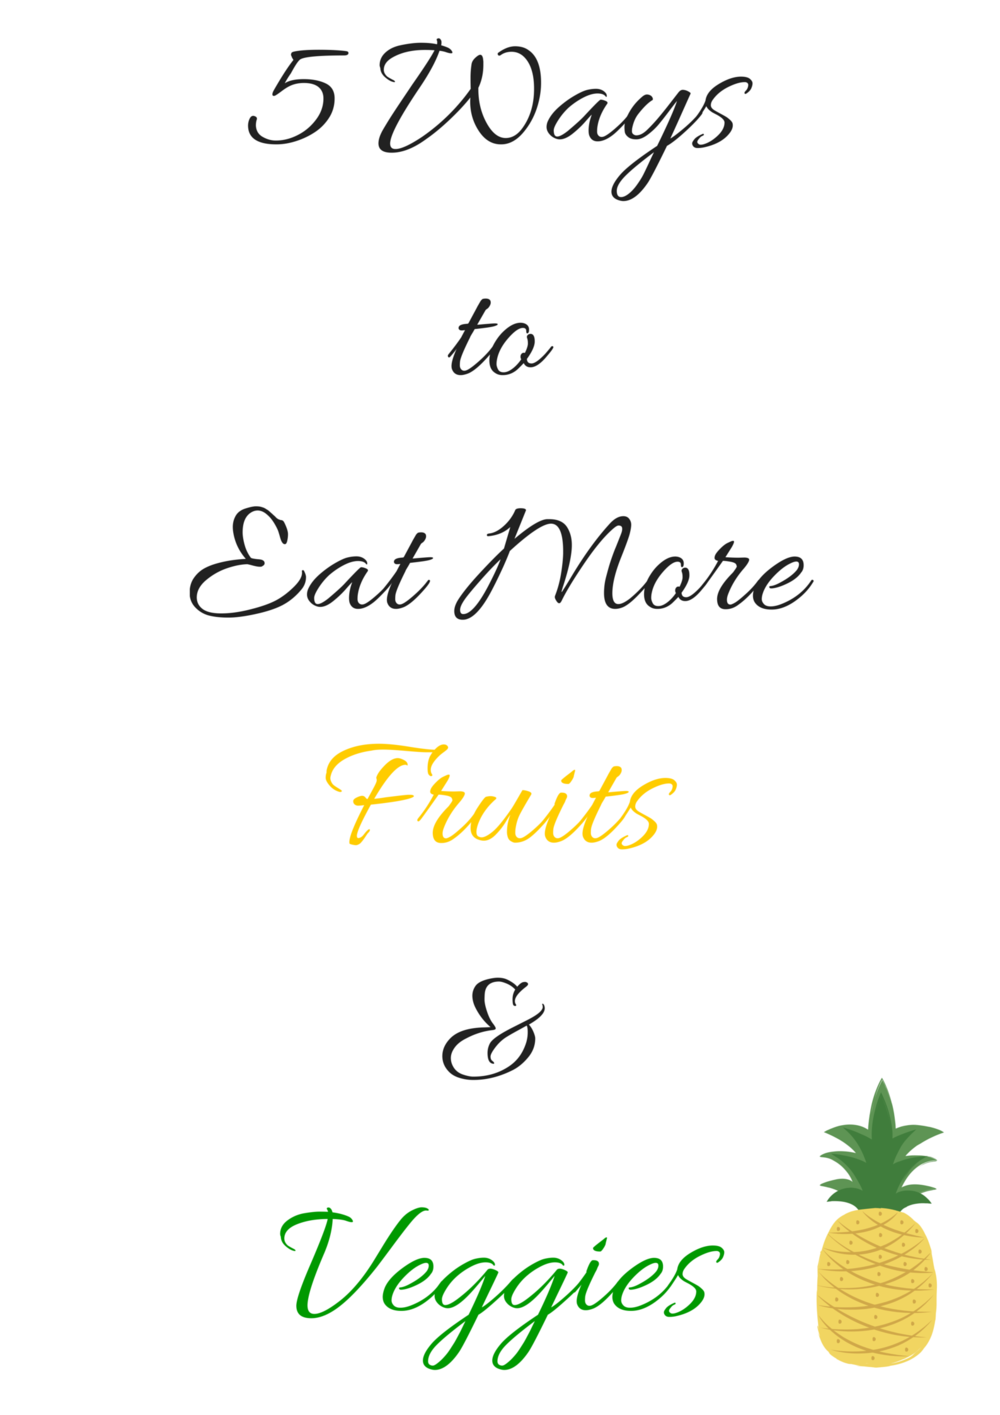 5-Ways-to-Eat-MoreFruits-Veggies.png